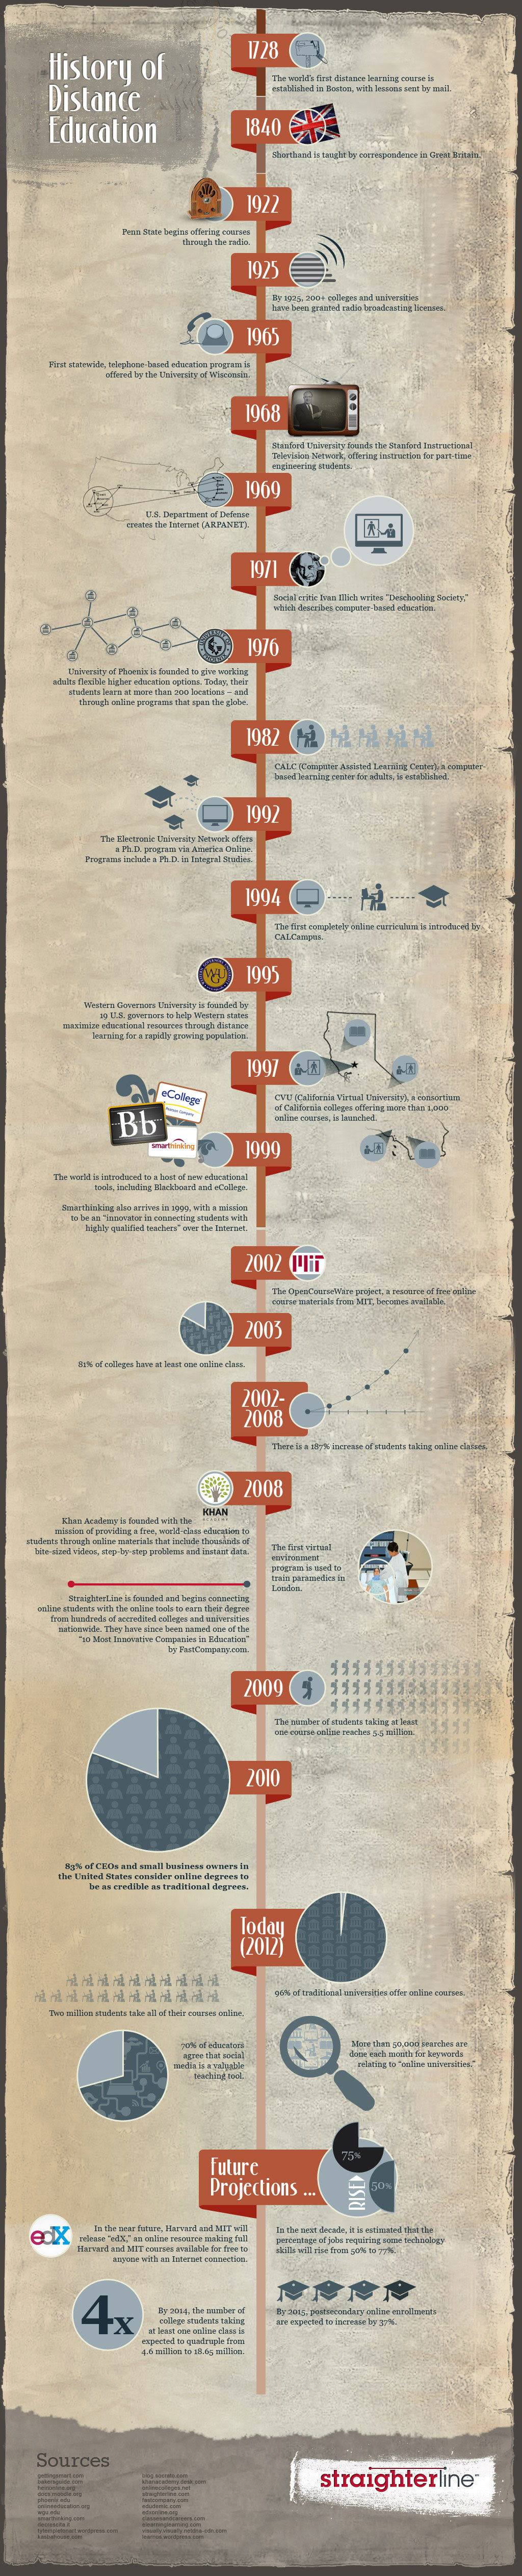 History of Distance & Online Education Infographic